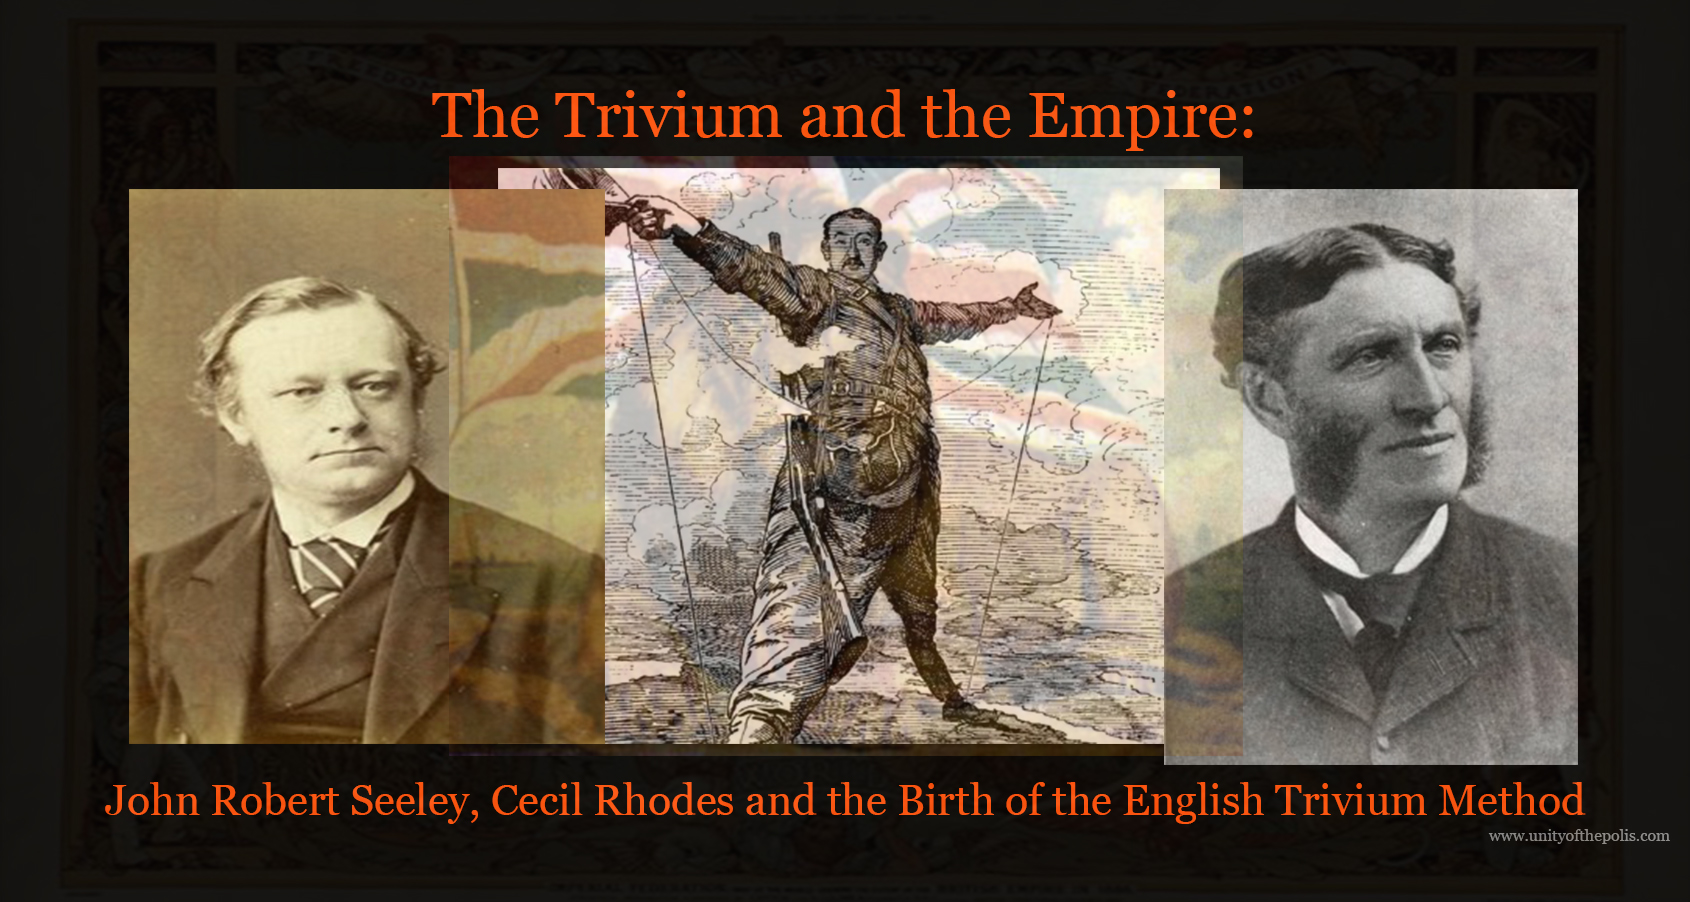 The Trivium and the Empire - John Robert Seeley, Cecil Rhodes and the Birth of the English Trivium Method - UOP 003